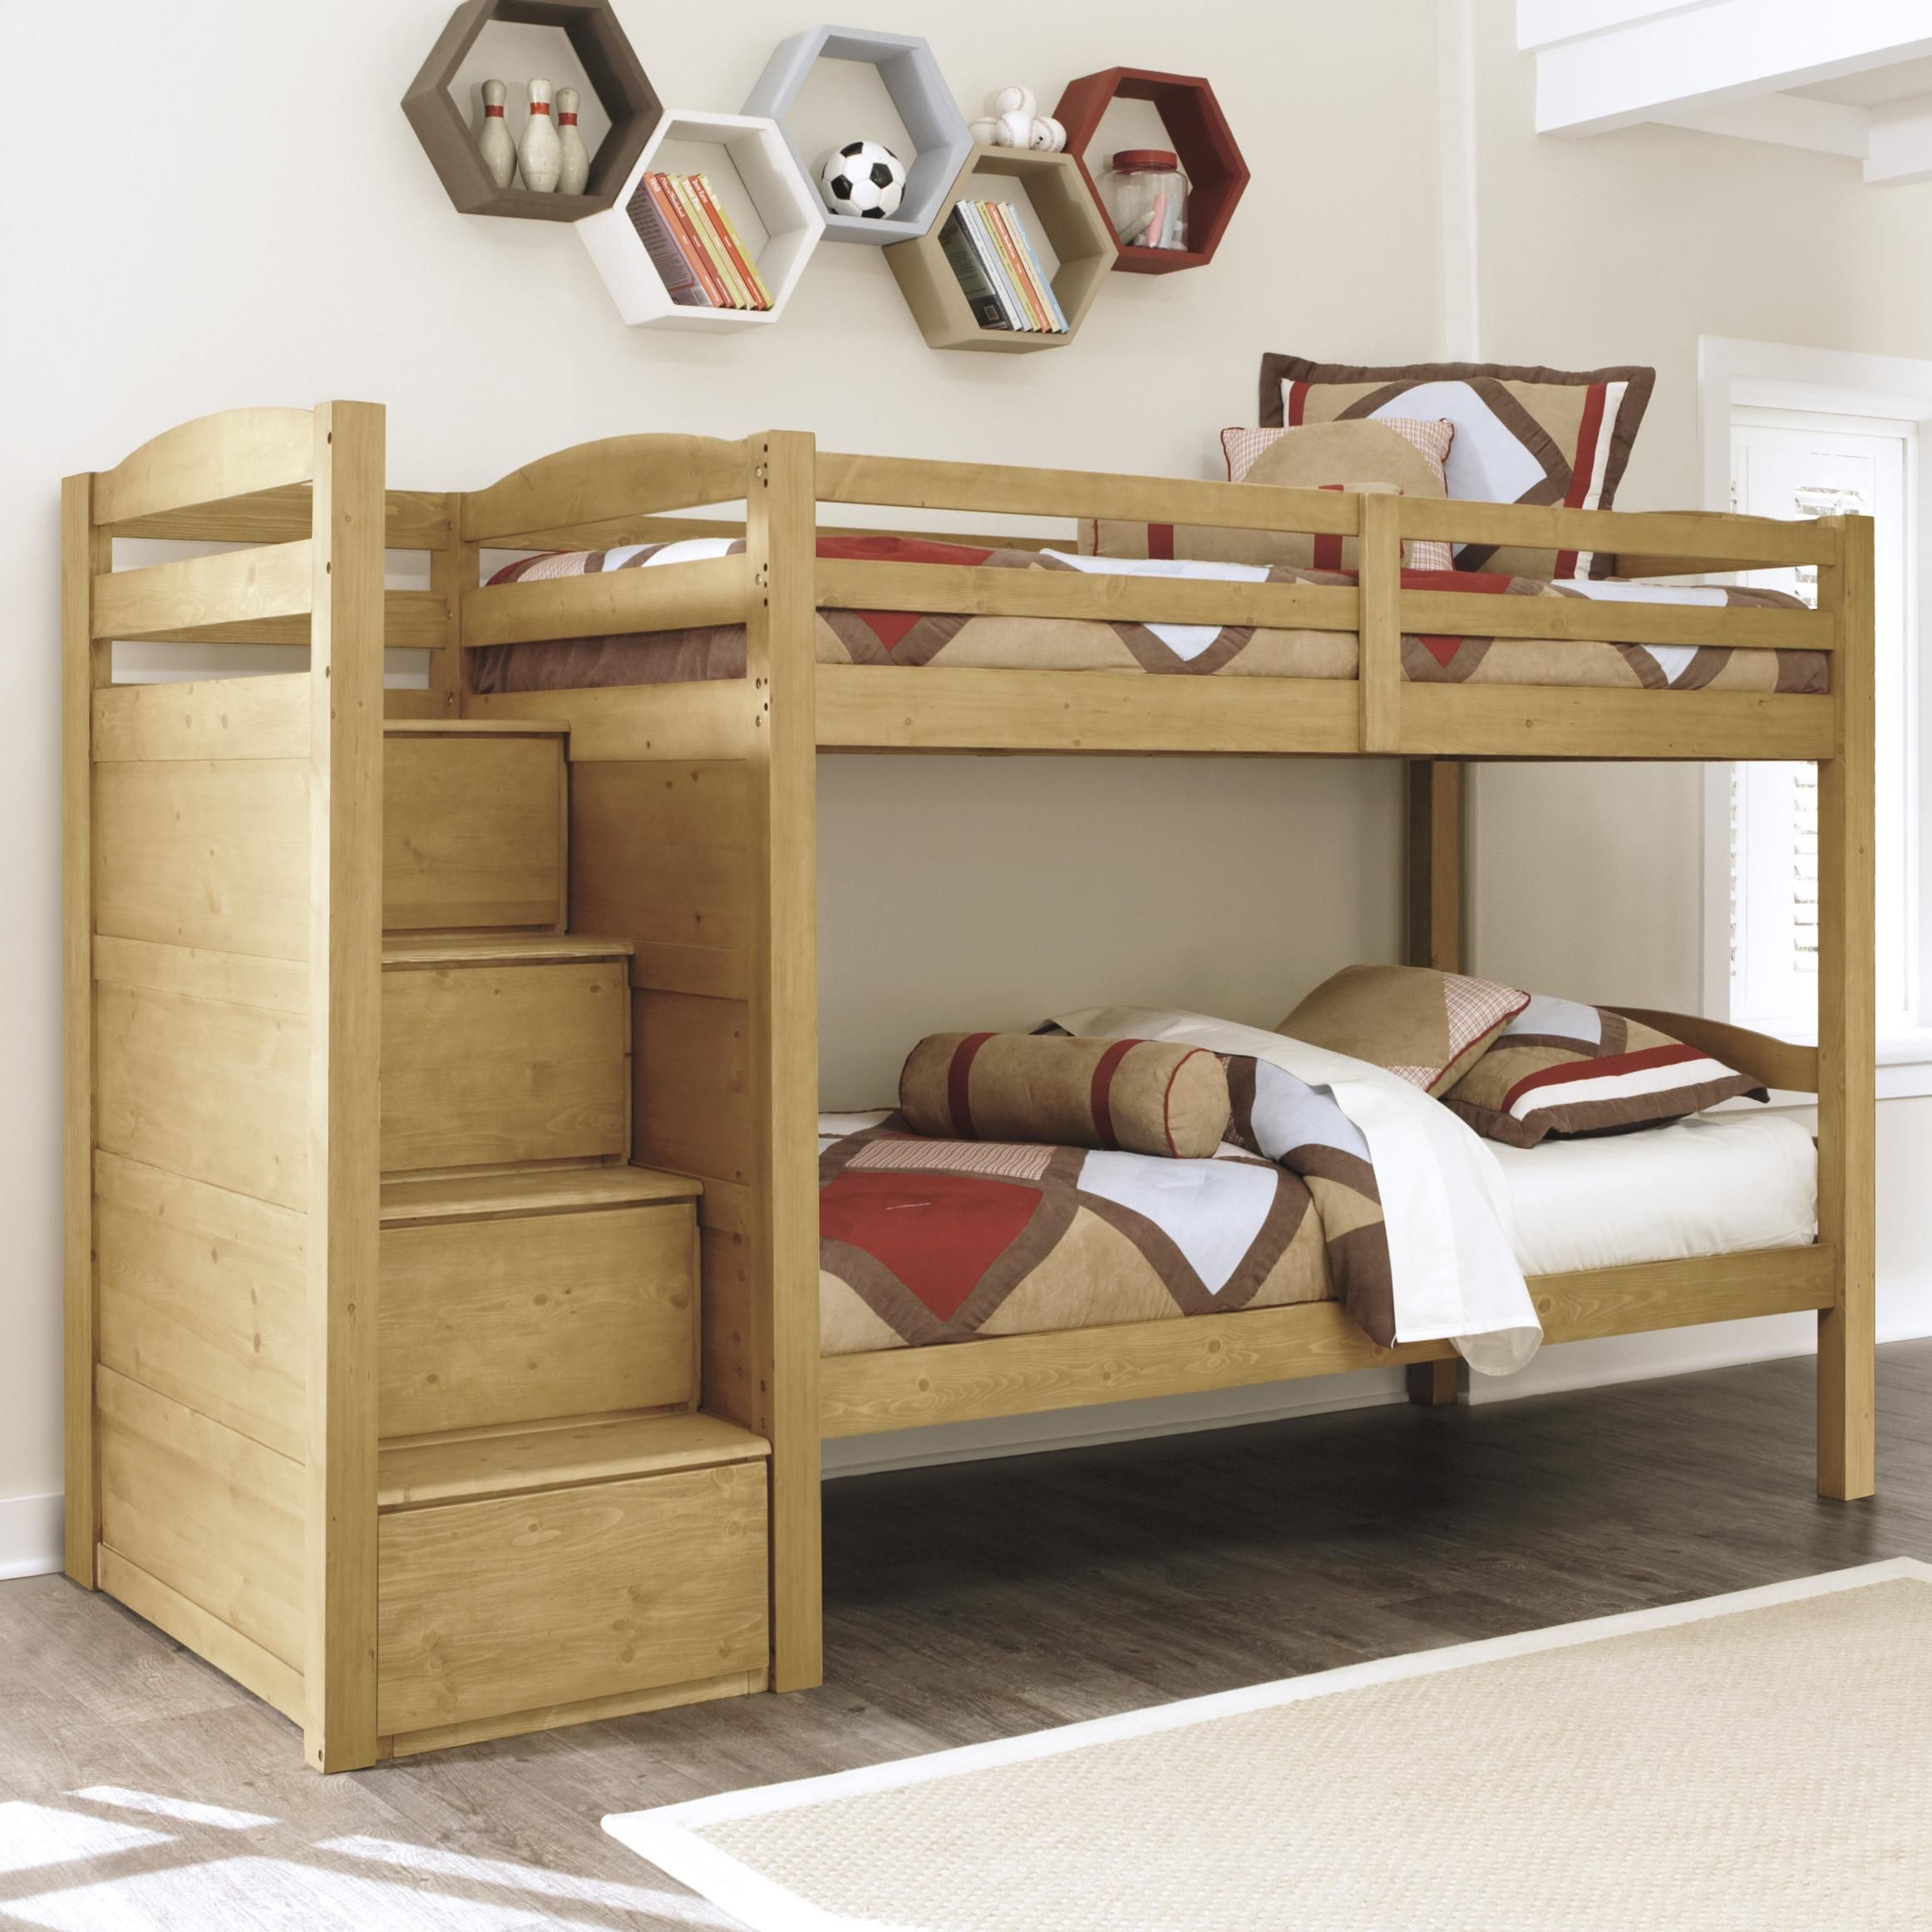 The Storage Stair Steps Can Be Assembled On The Right Or Left Side Of The Bunk Bed The Steps Incorporate Four Drawers With Images Kid Beds Bunk Beds With Stairs Bunk